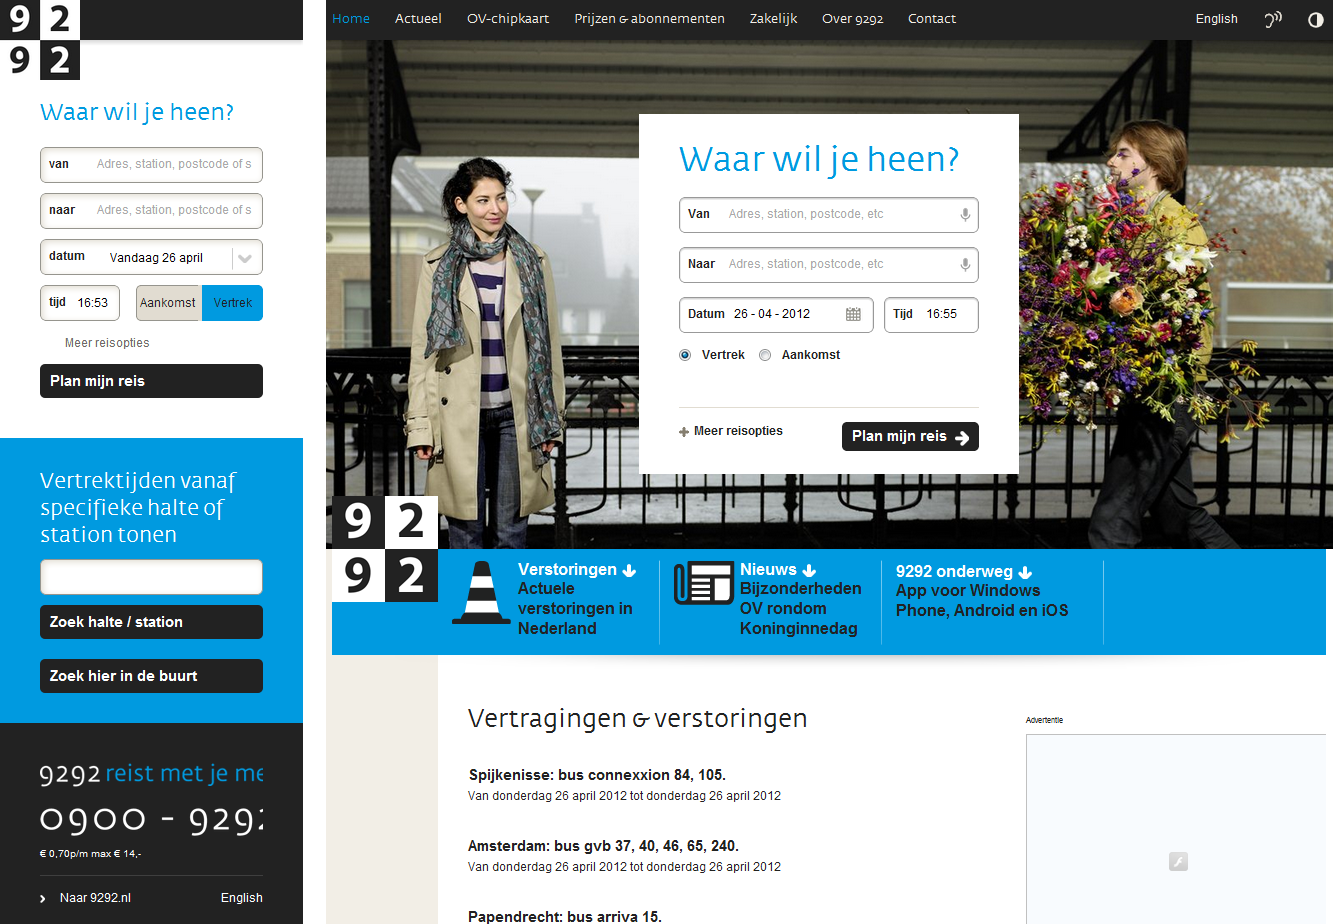 9292.nl: good for pre-planning journeys; less good for finding updates en route